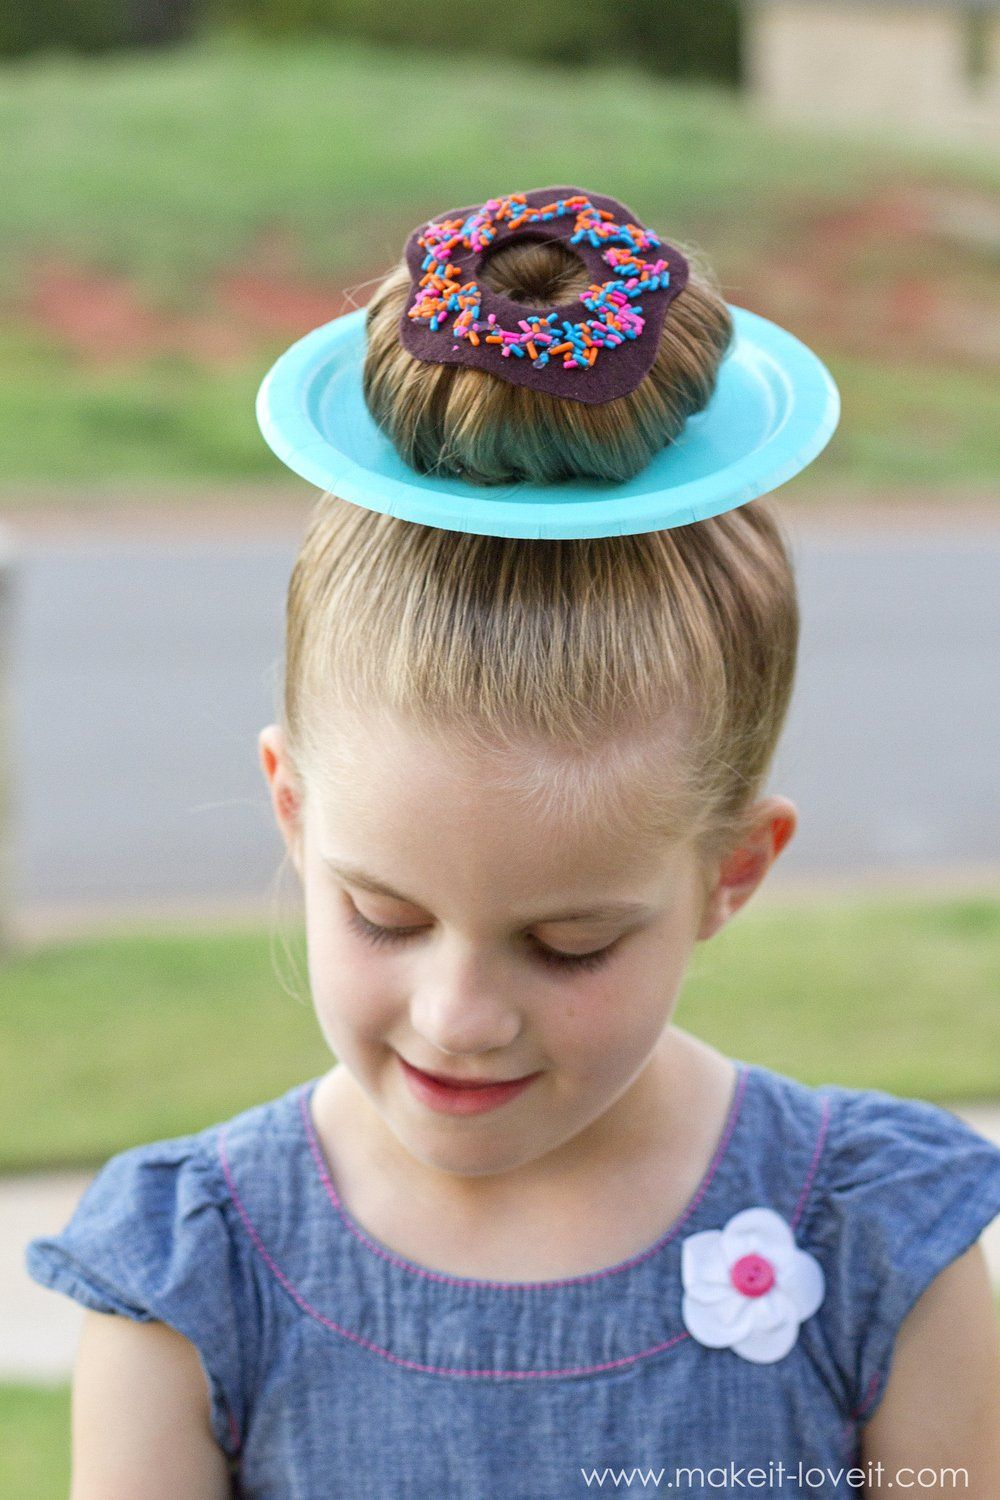 25 CLEVER IDEAS for 'Wacky Hair Day' at SCHOOL!! (…including Chloe's wacky hair!) #girlhair